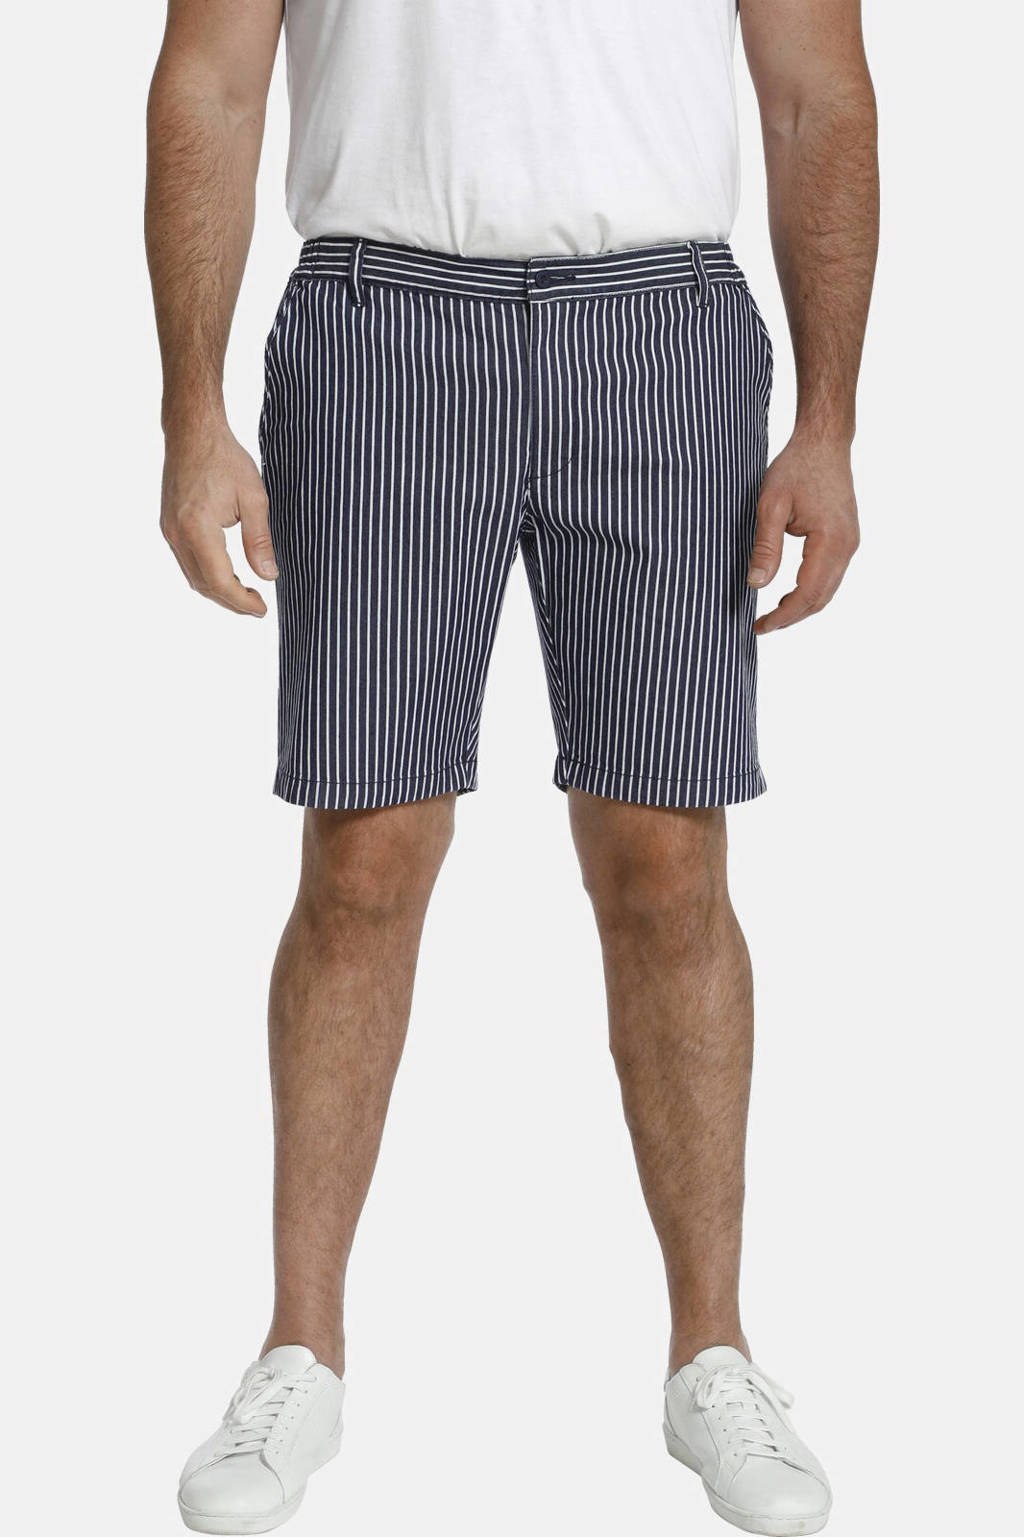 Charles Colby gestreepte loose fit short BARON IKE Plus Size blauw/wit, Blauw/wit